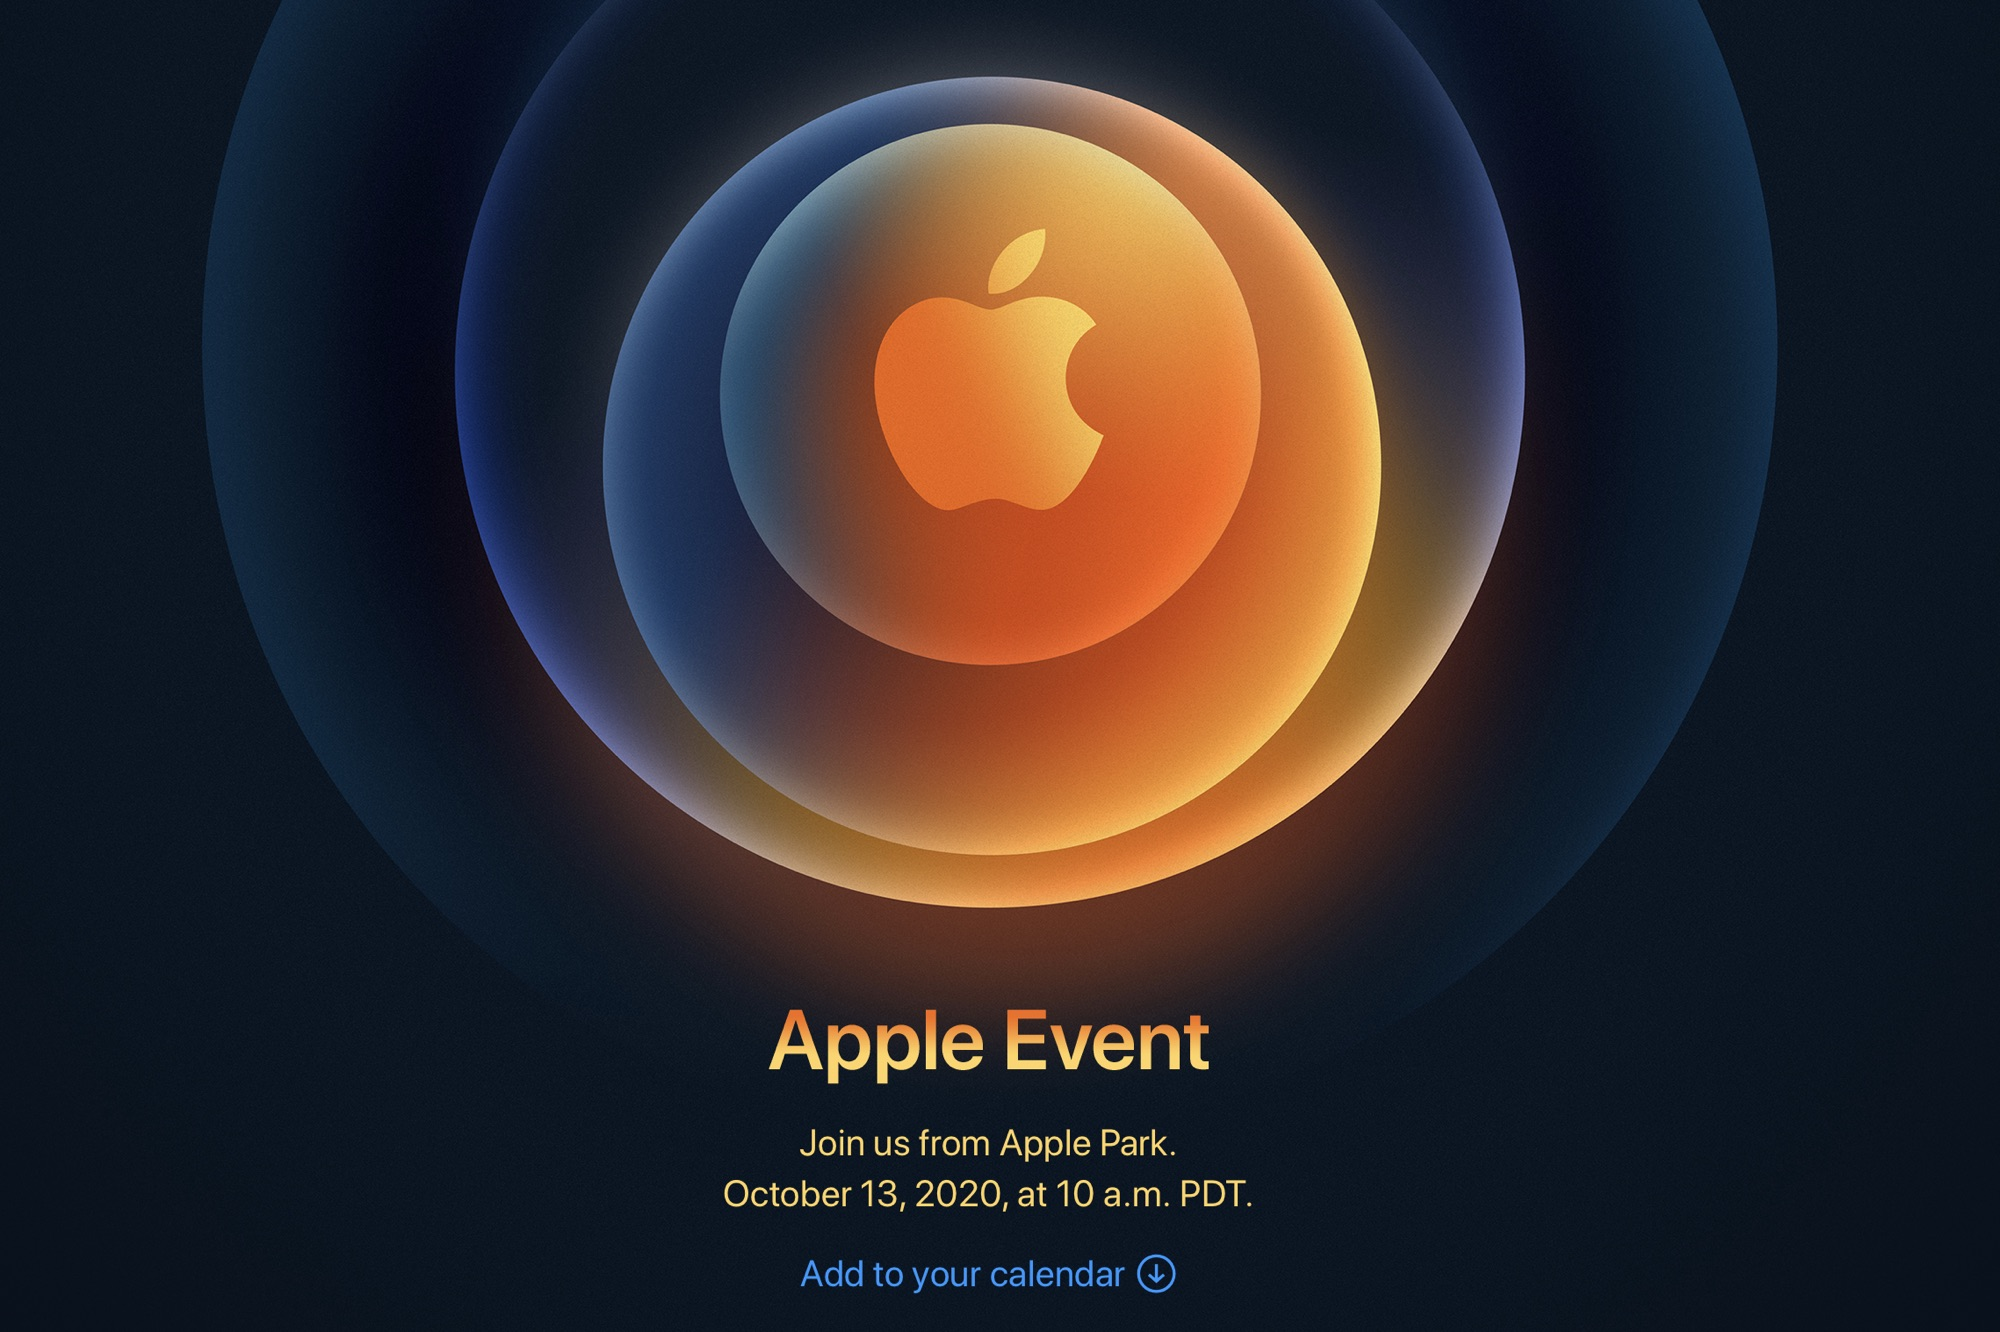 Apple S 2021 Event Plans New Products And Software Coming In 2021 Macrumors